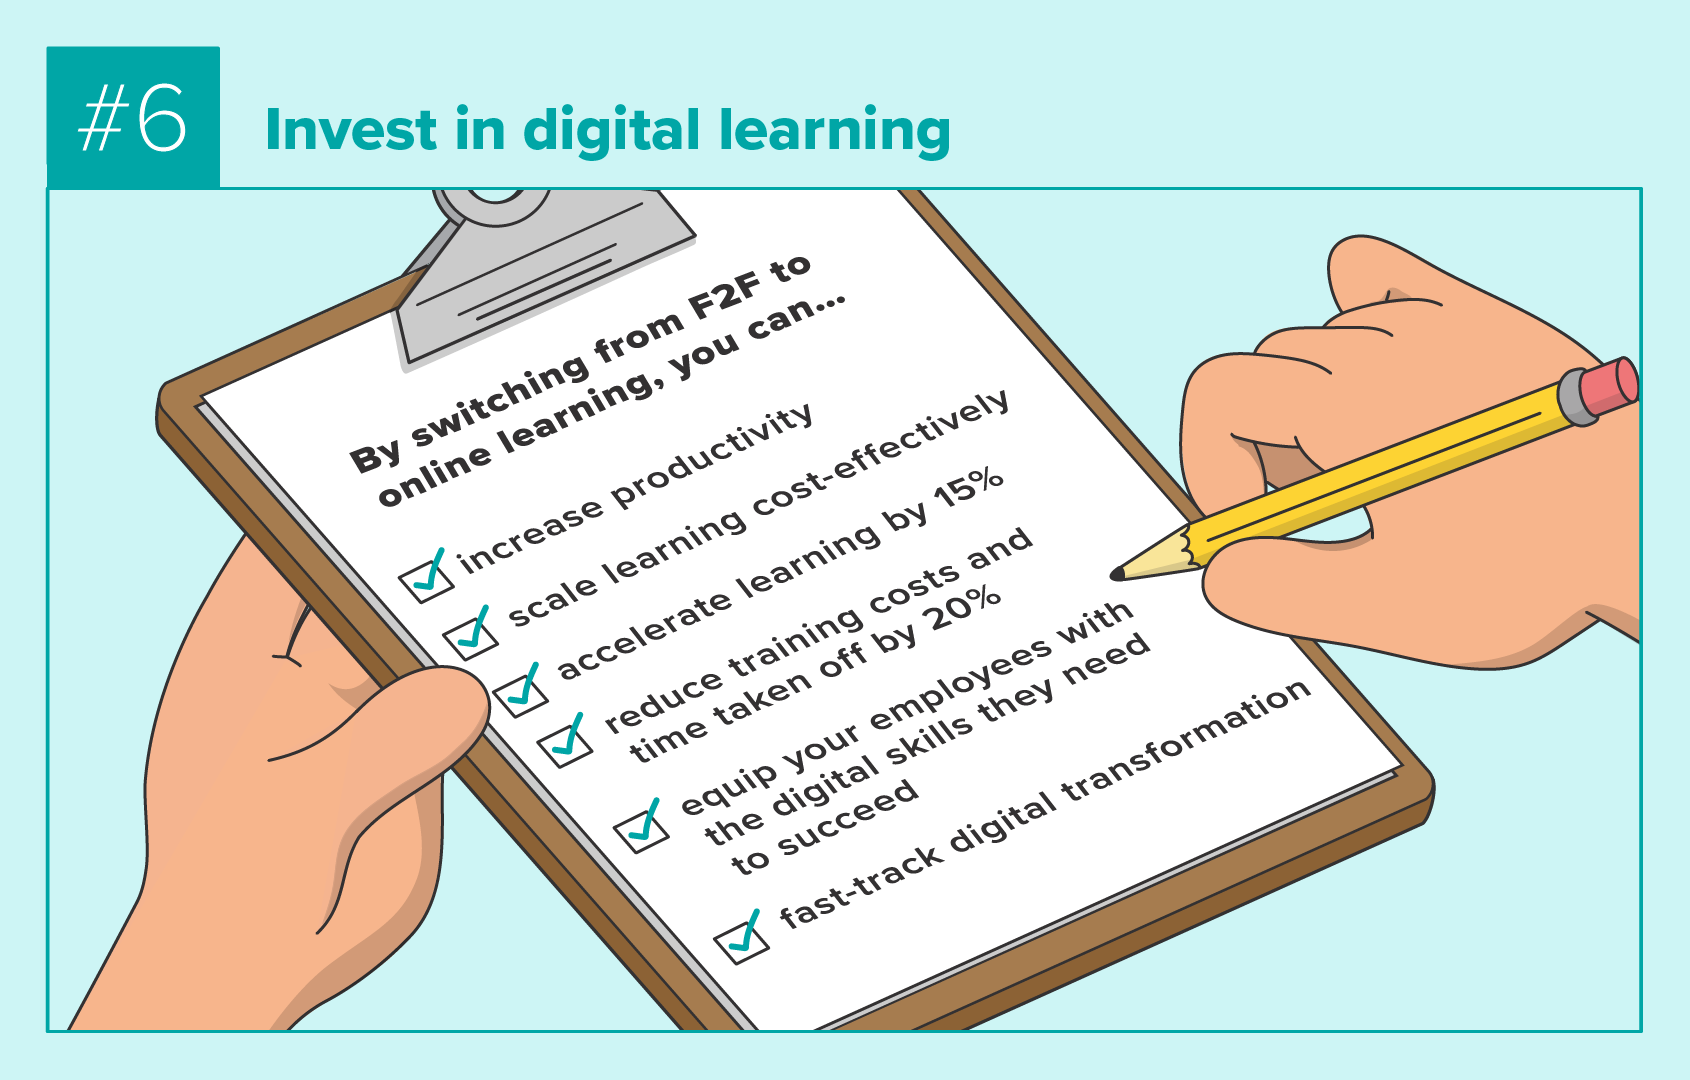 Benefits of investing in digital learning